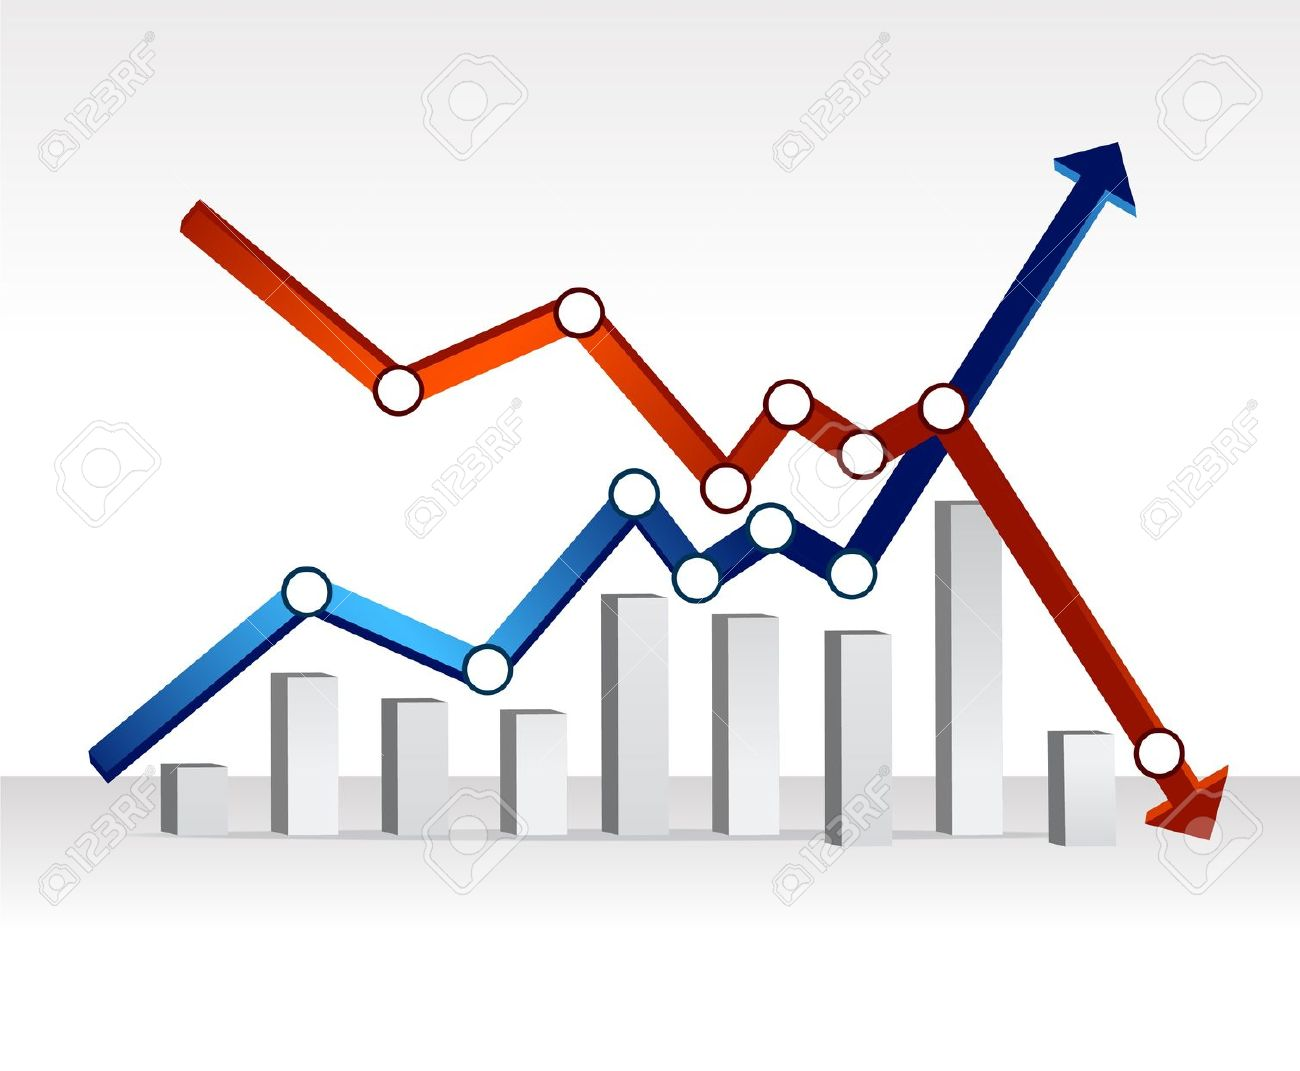 Financial graphs graphically speaking. Graph clipart economics graph